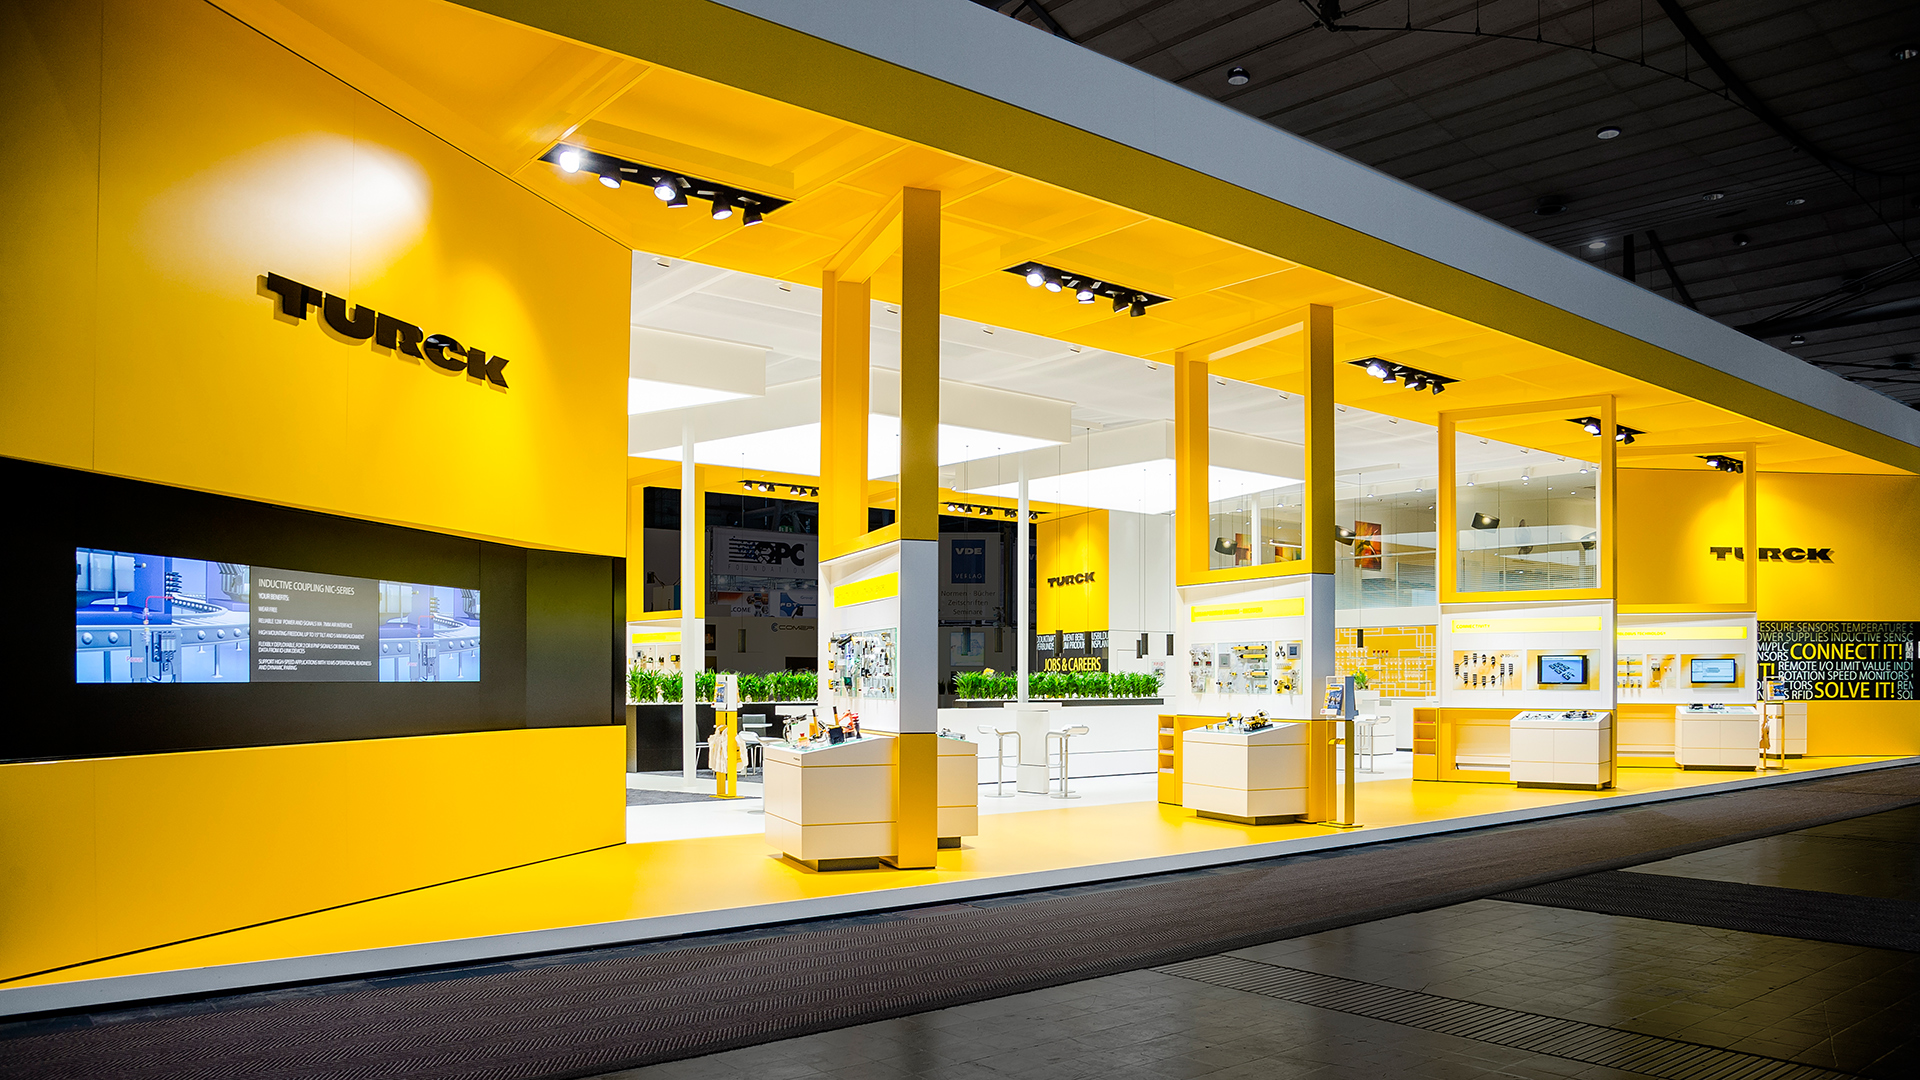 Dart stages the Turck fair stand at the HMI 2014